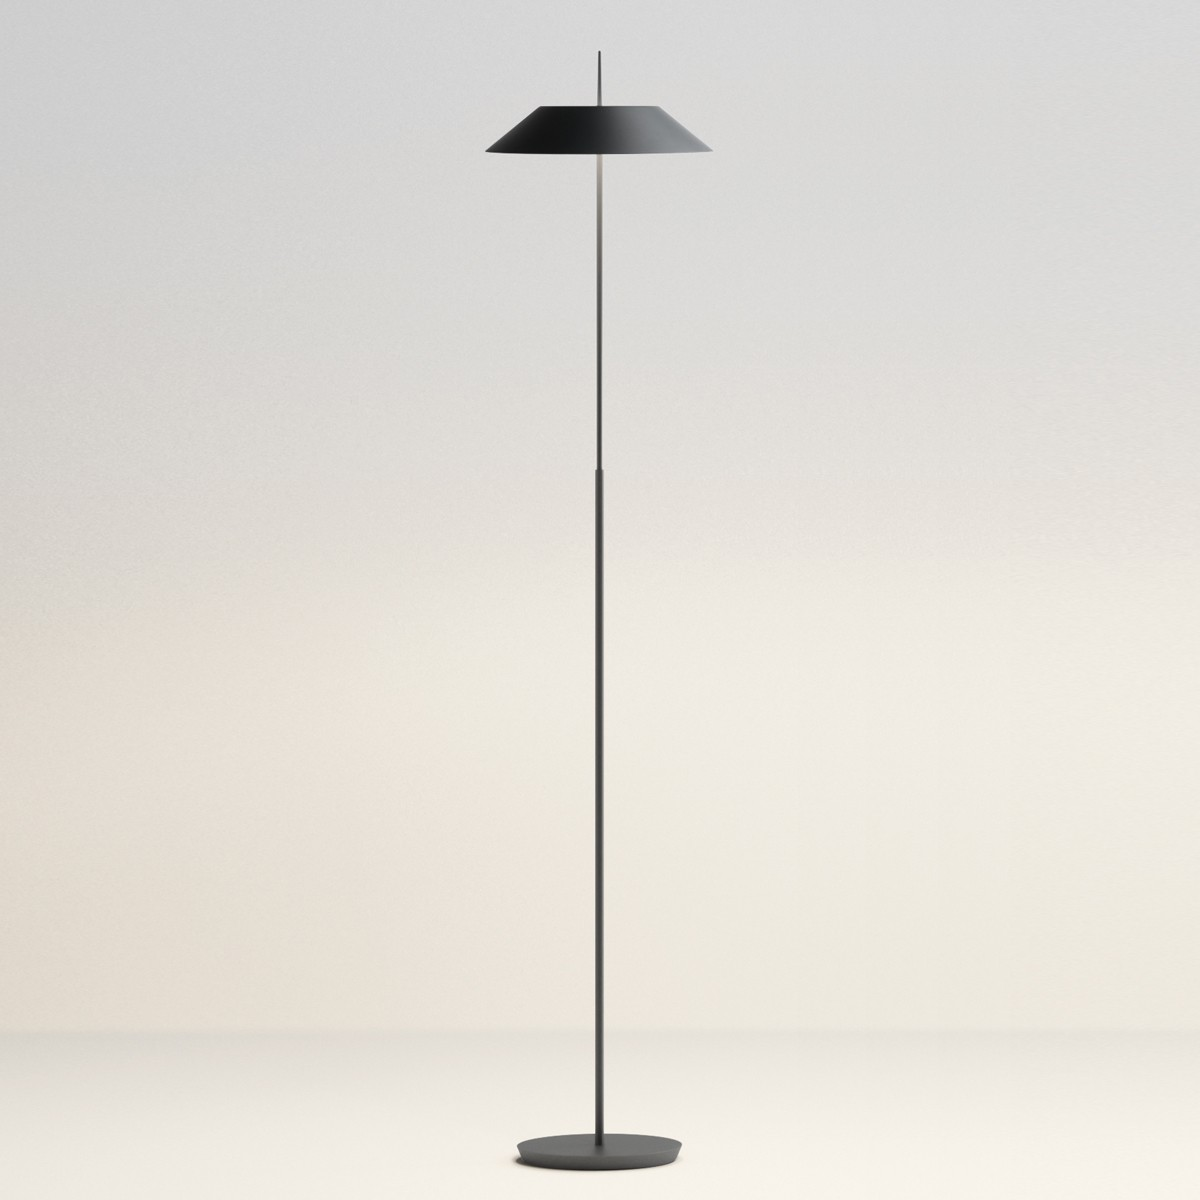 Vibia Mayfair 5515 Stehleuchte, graphitgrau matt